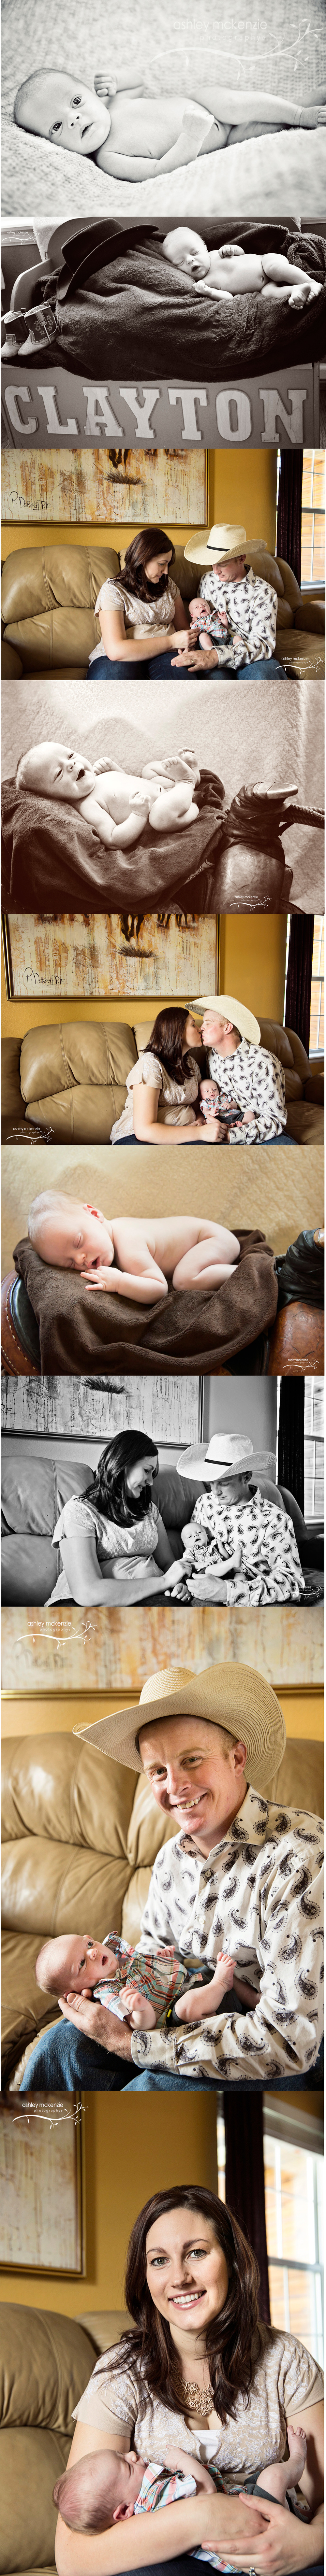 Newborn Photography by Ashley McKenzie Photography in Greeley, Colorado